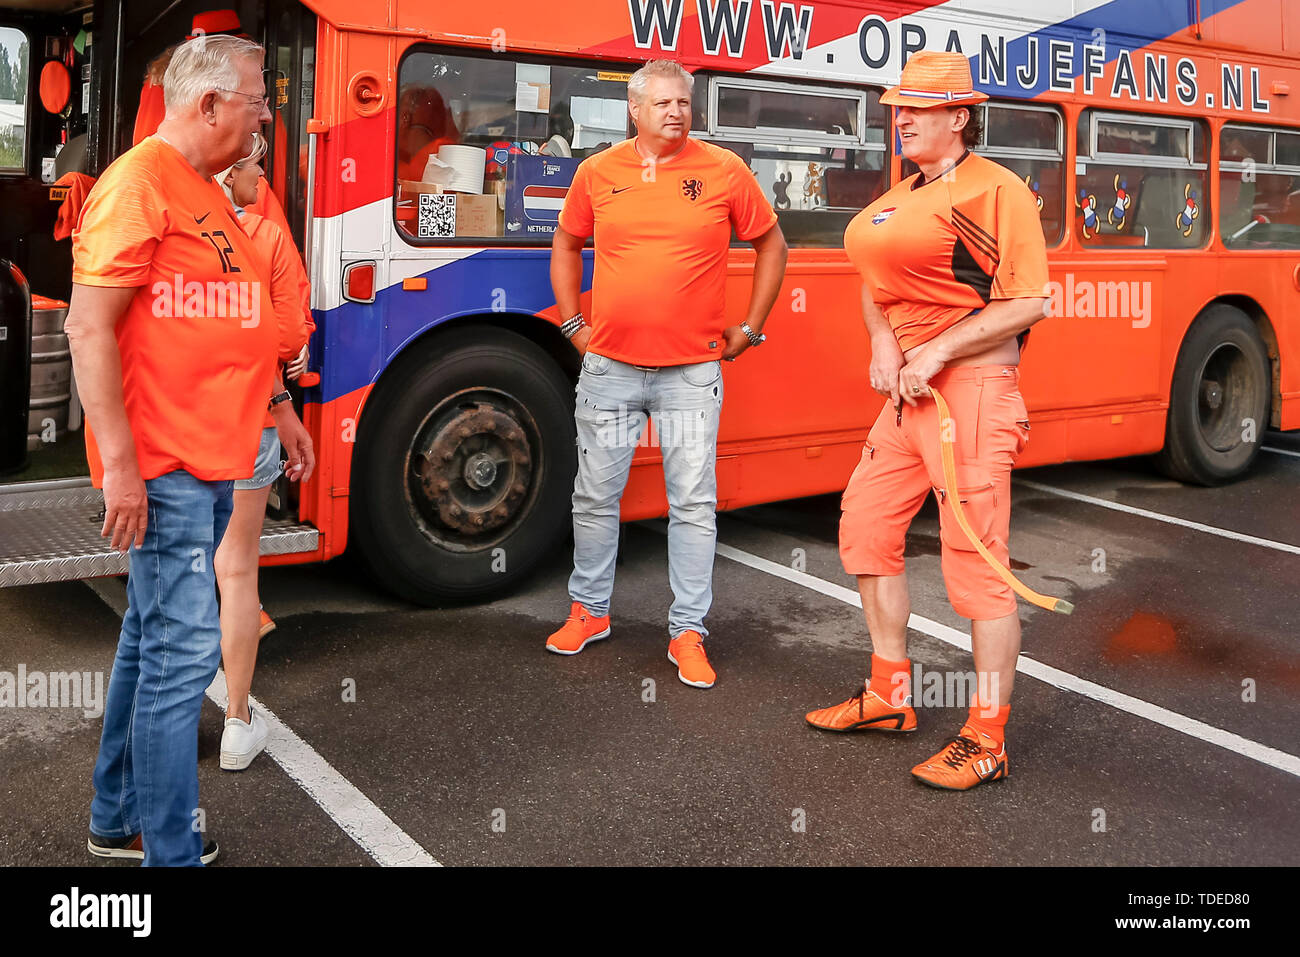 VALENCIENNES, 15-06-2019 ,, World championship 2019 , fans on their way to Valenciennes ,  fans on their way to Valenciennes - Stock Image